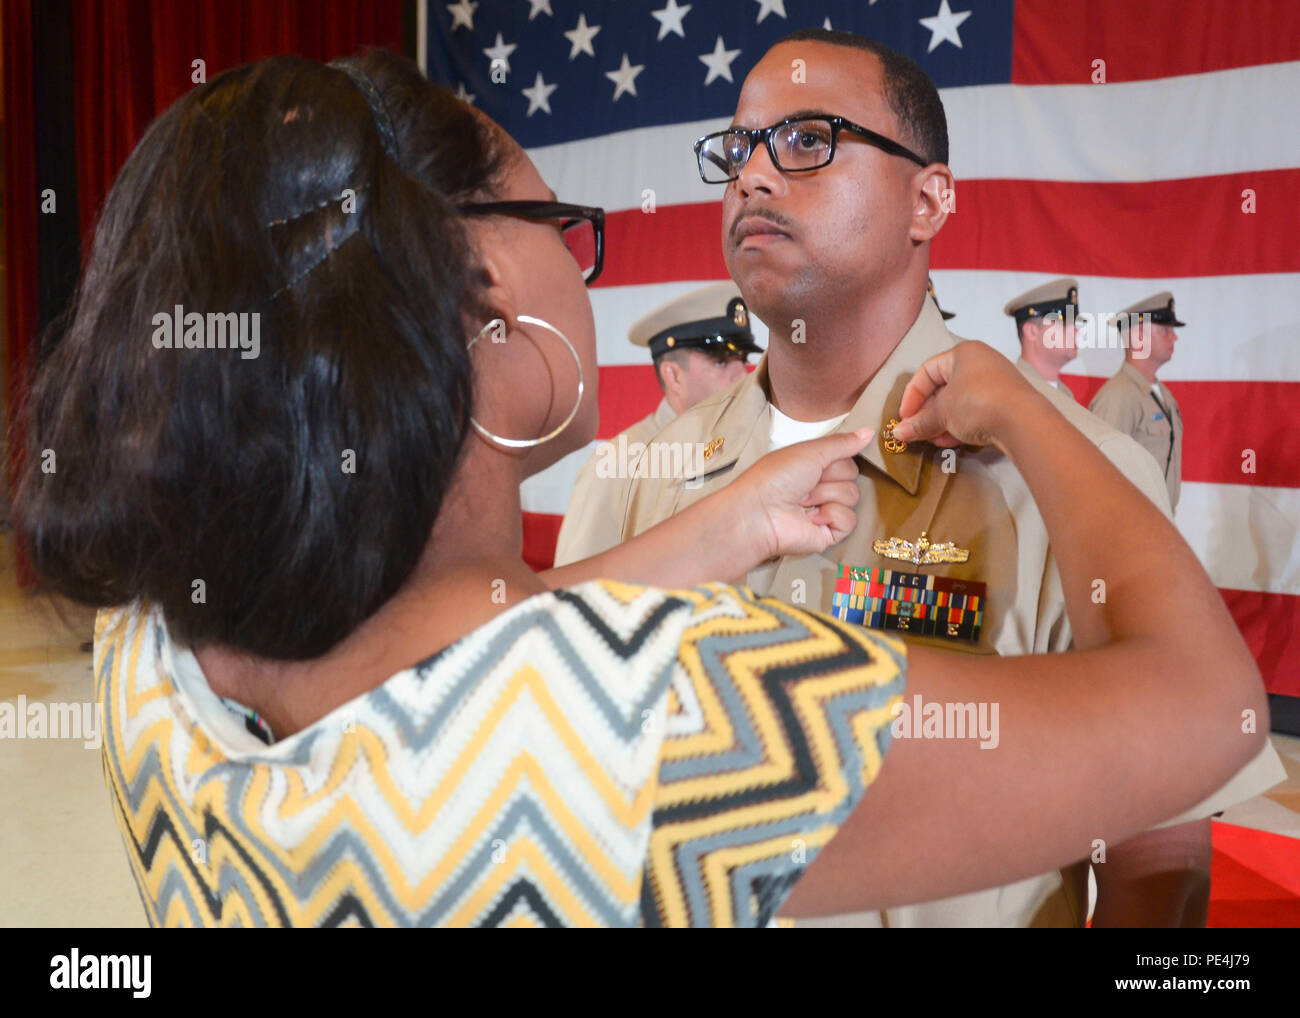 Derrick Evans High Resolution Stock Photography And Images Alamy